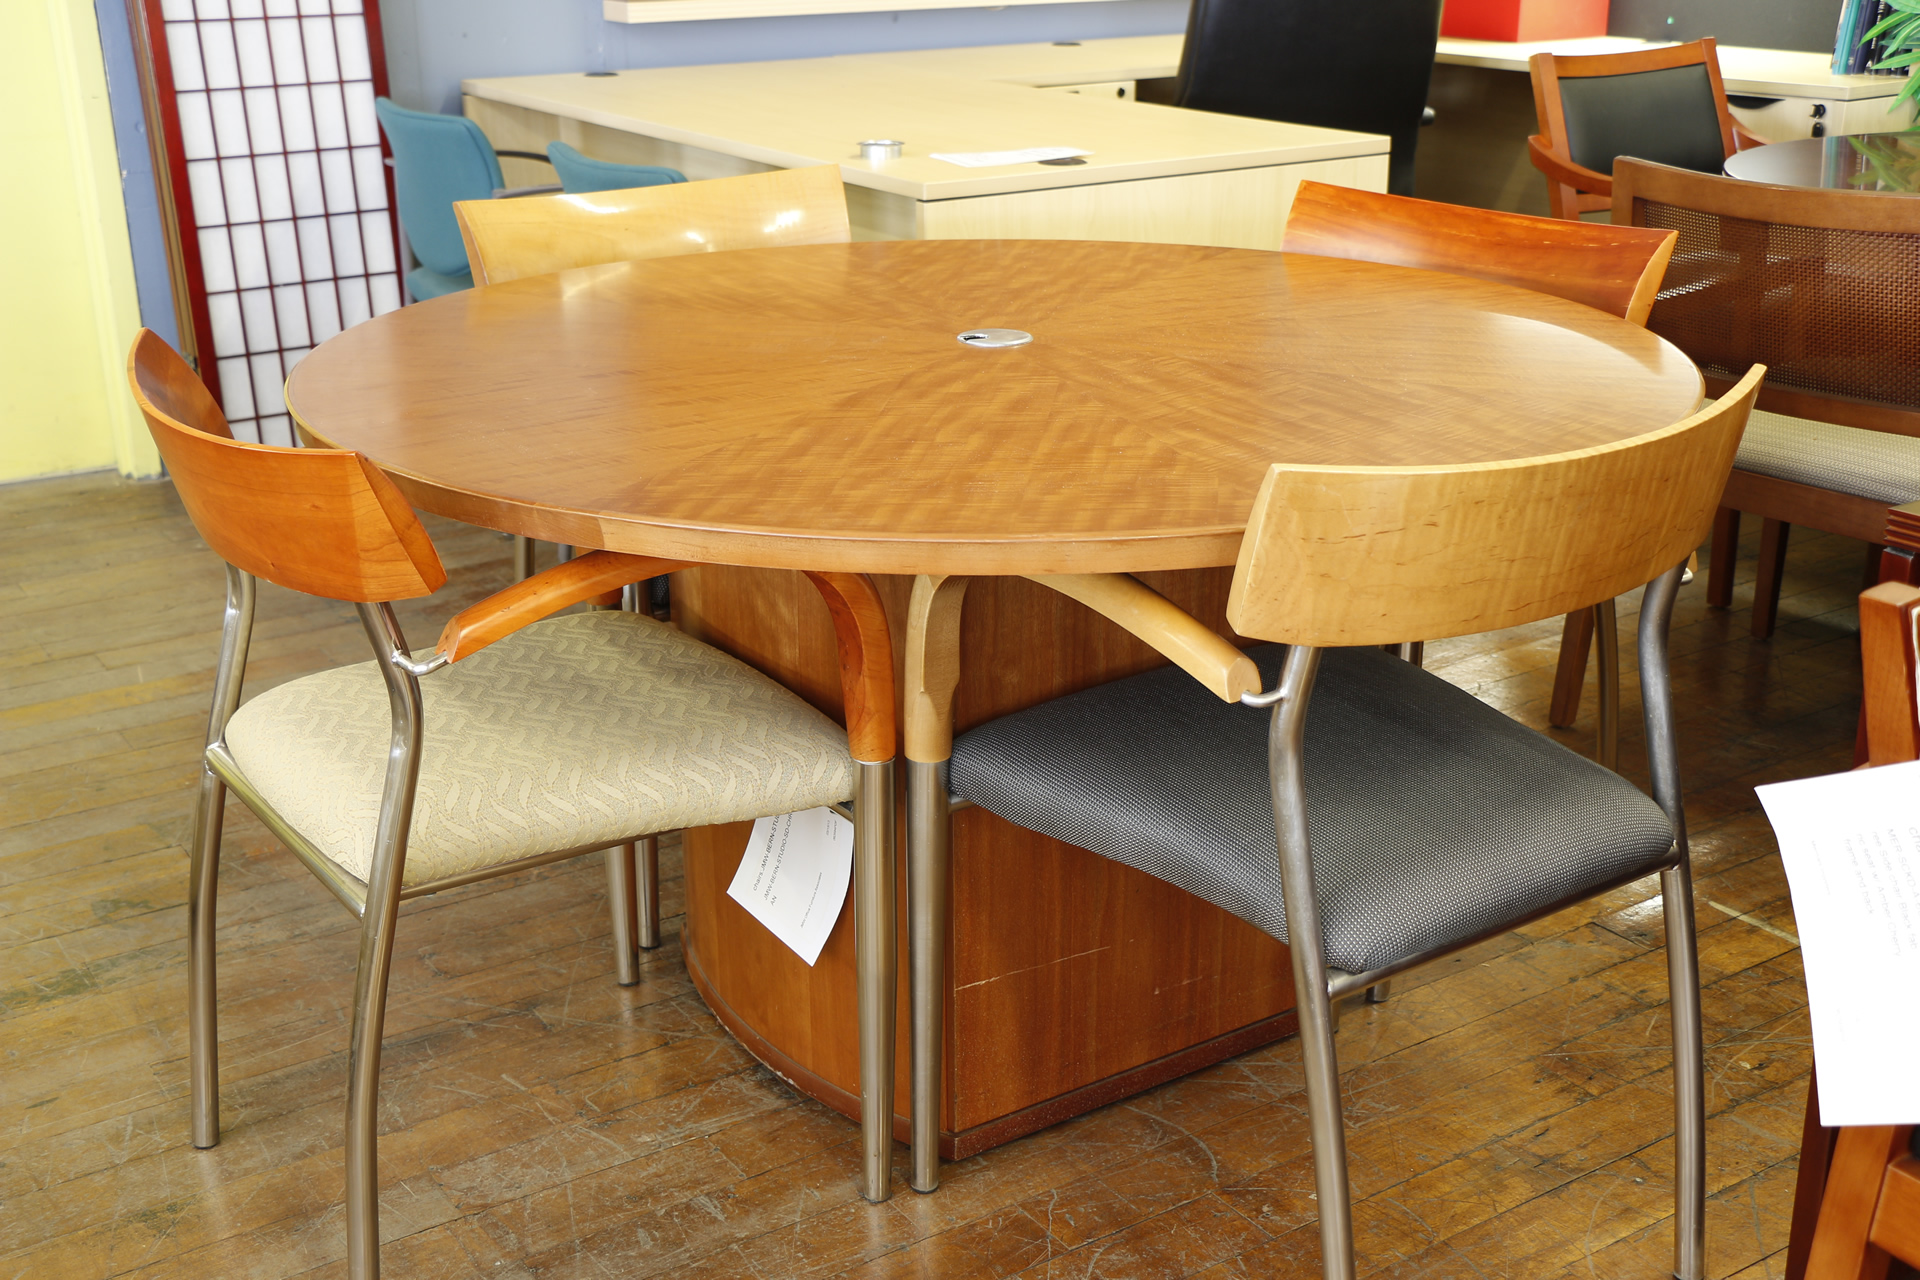 Bernhardt 54″ Round Anigre Meeting Table